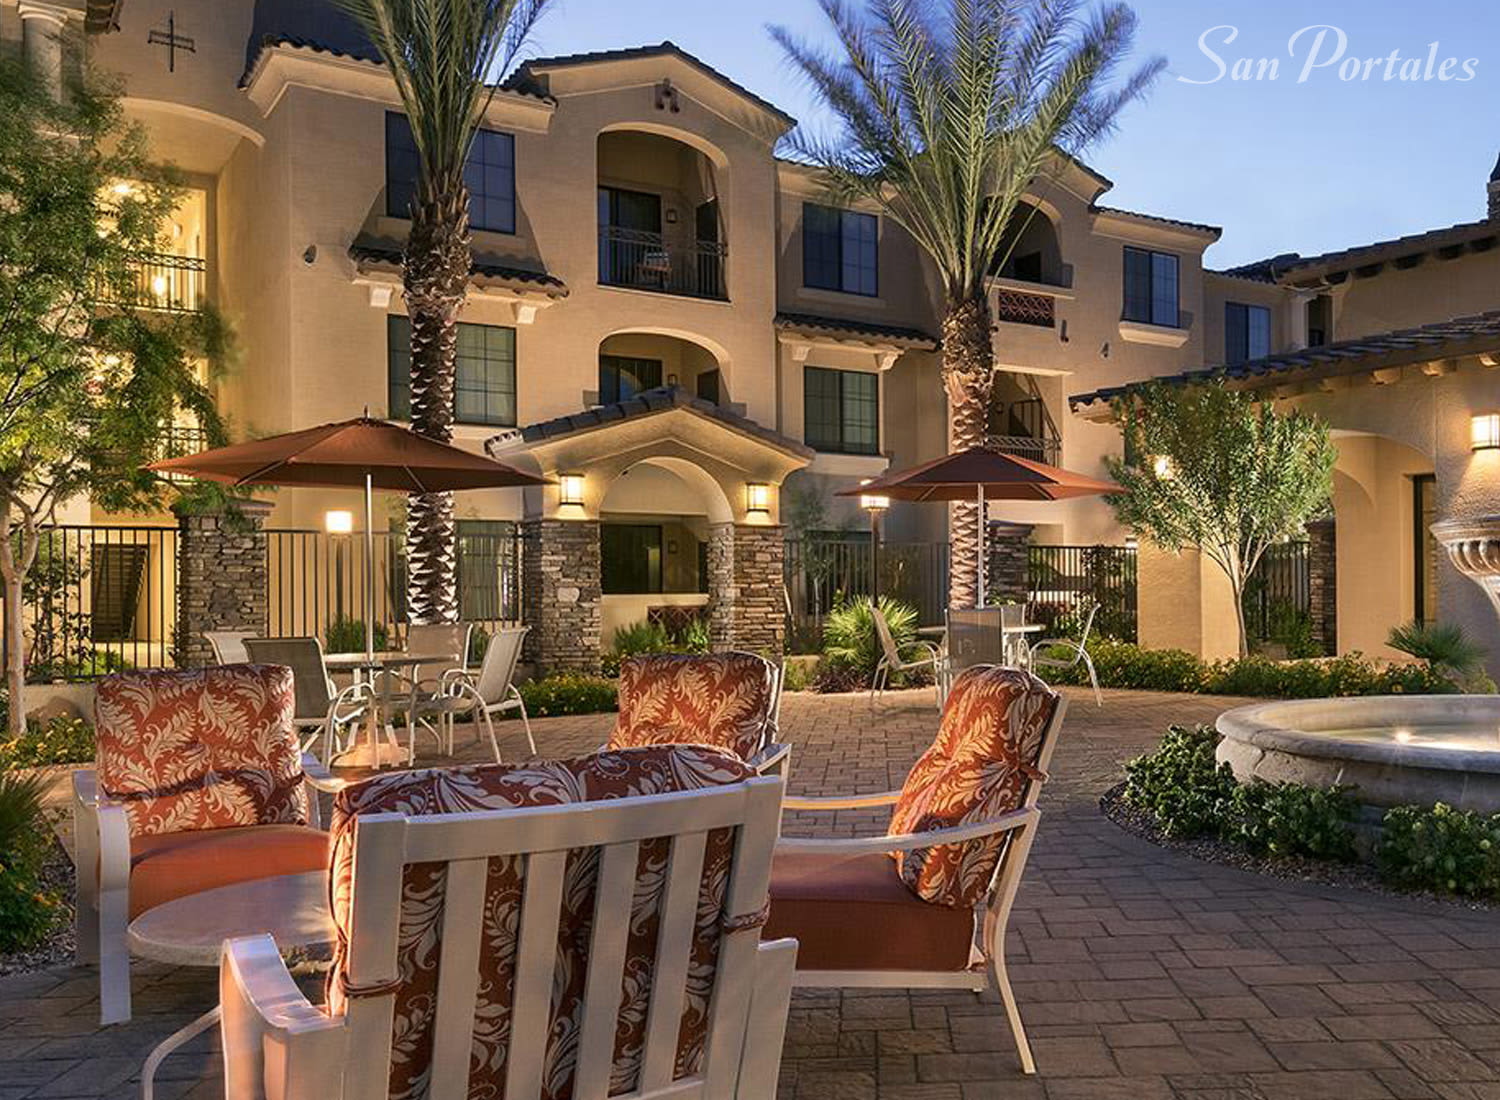 San Portales apartments in Scottsdale, Arizona